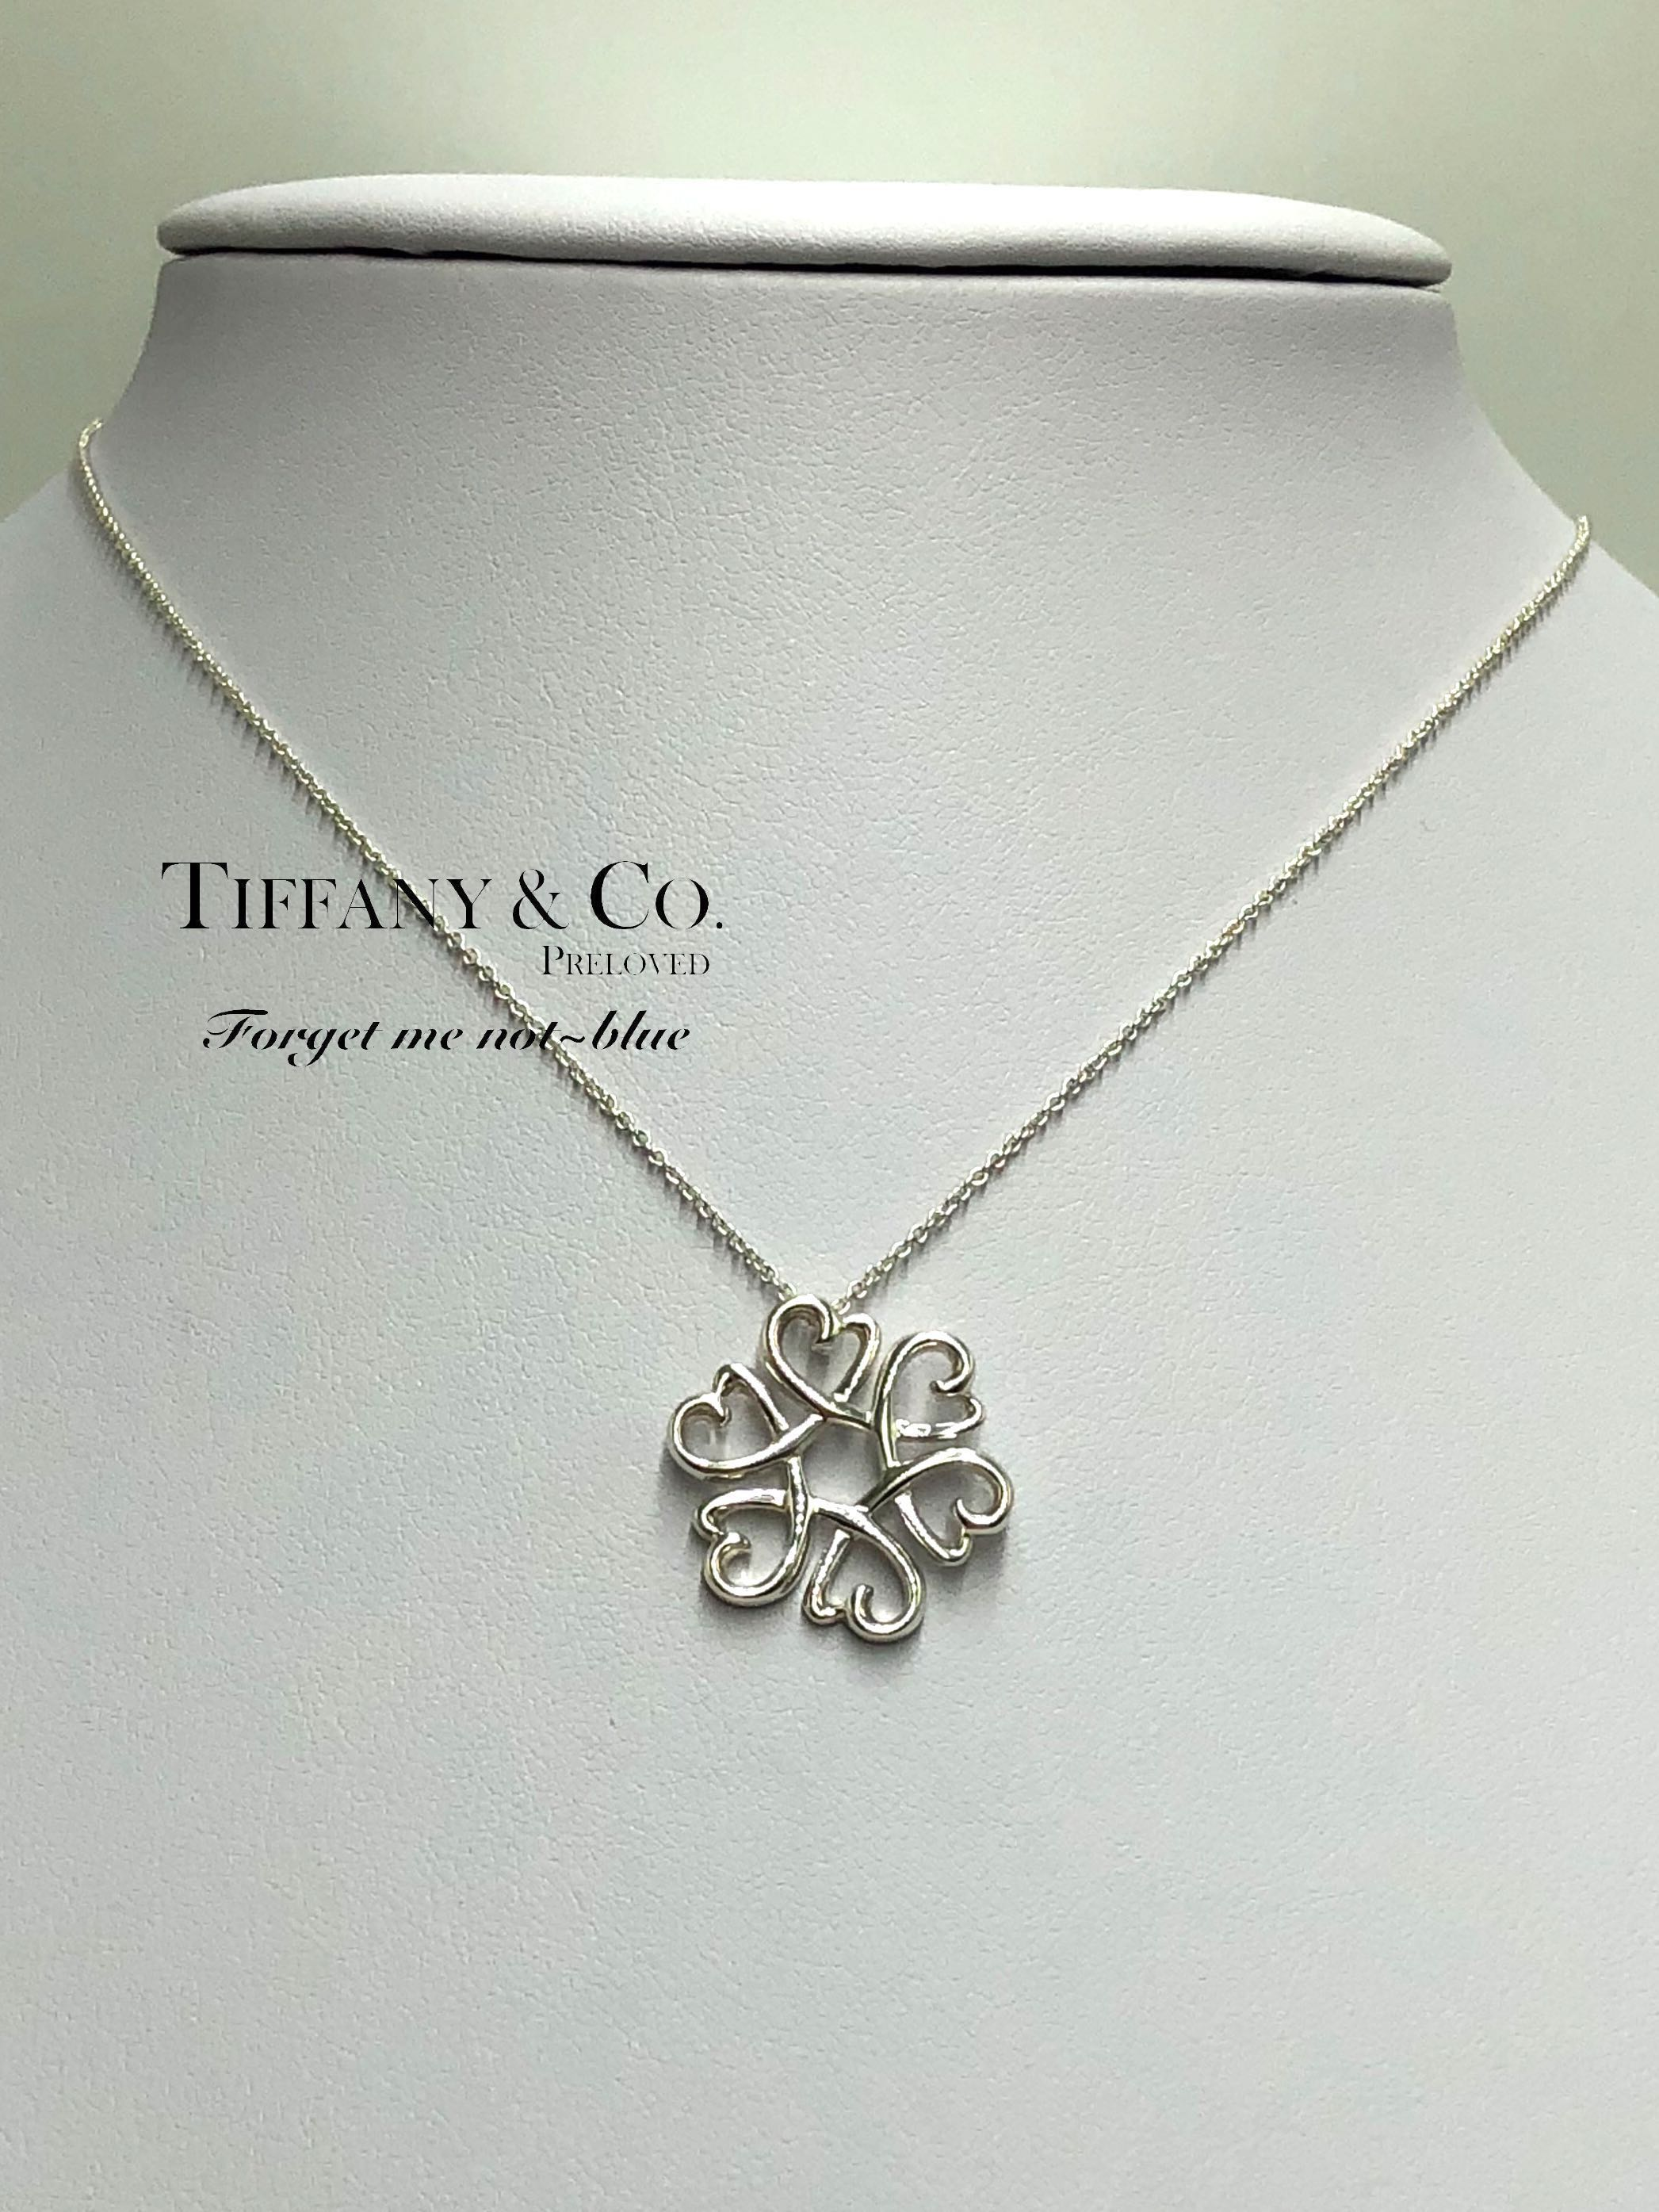 7c1c68b29a7 Authentic RARE Tiffany & Co. Paloma Picasso Medallion Loving Heart Pendant,  Luxury, Accessories, Others on Carousell